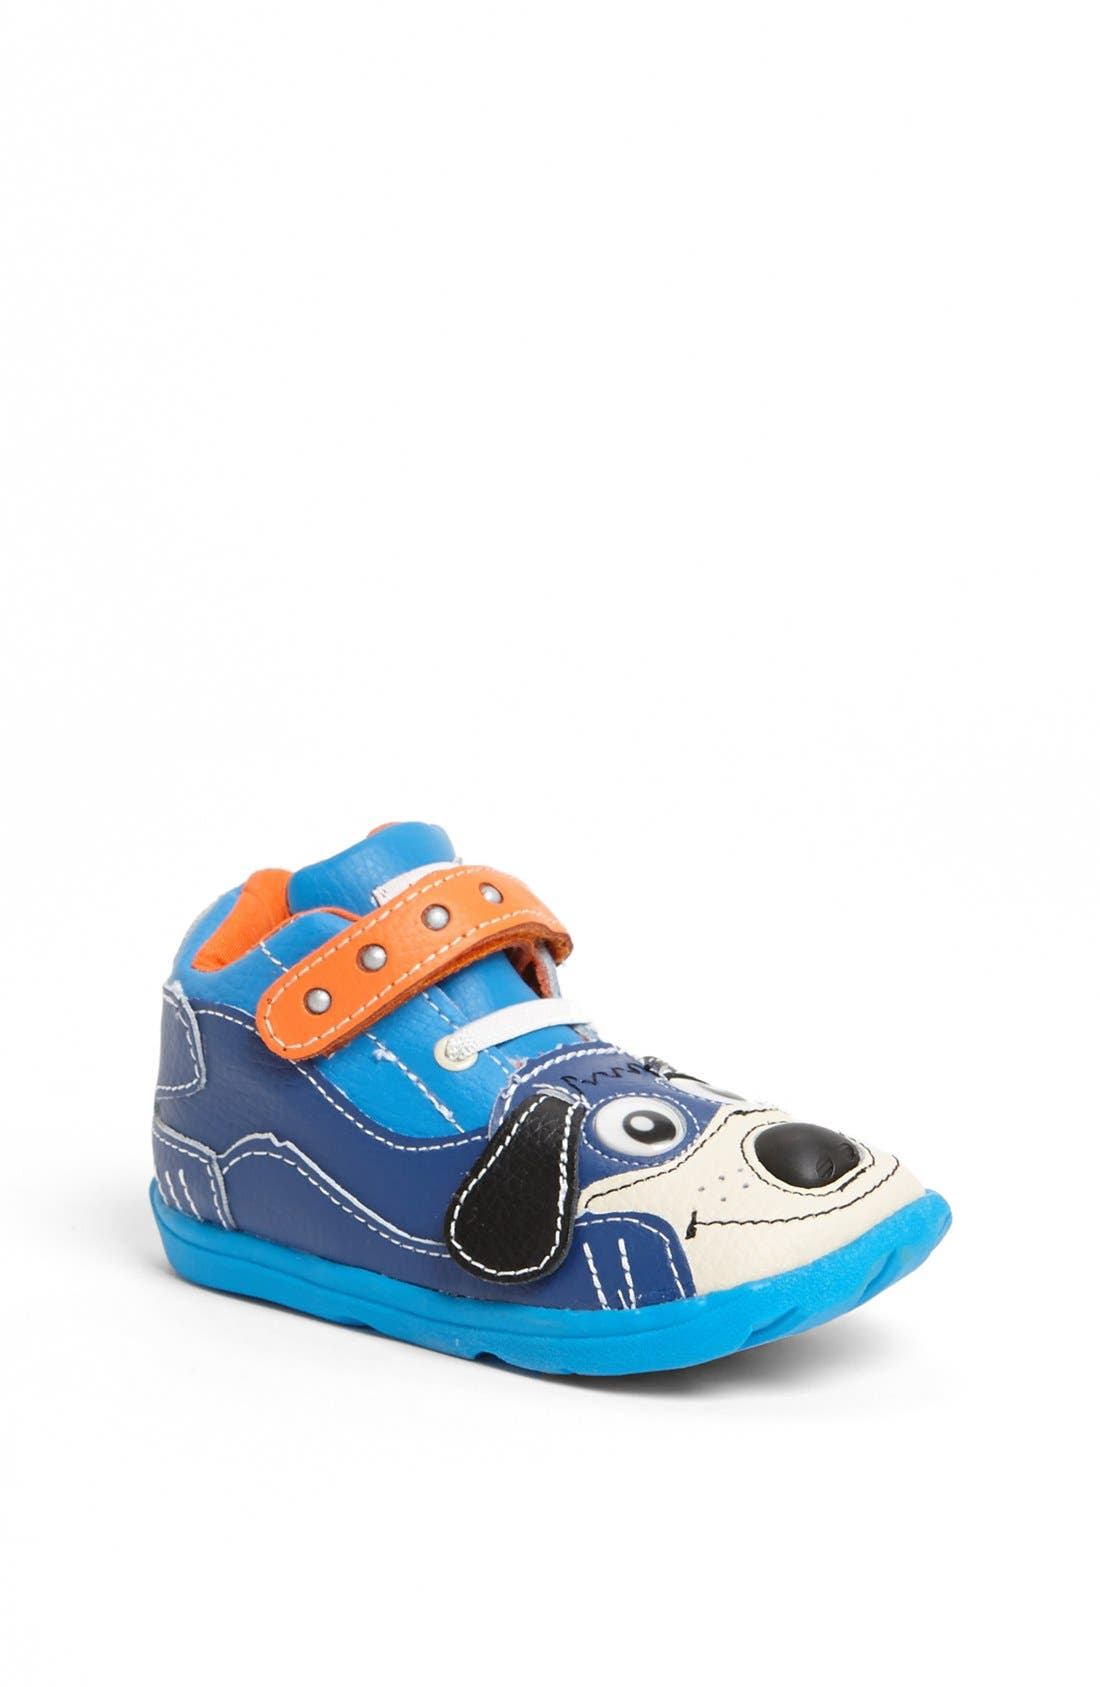 Alternate Image 1 Selected - Zooligans™ 'Sparky the Puppy' Sneaker (Baby, Walker, Toddler & Little Kid)